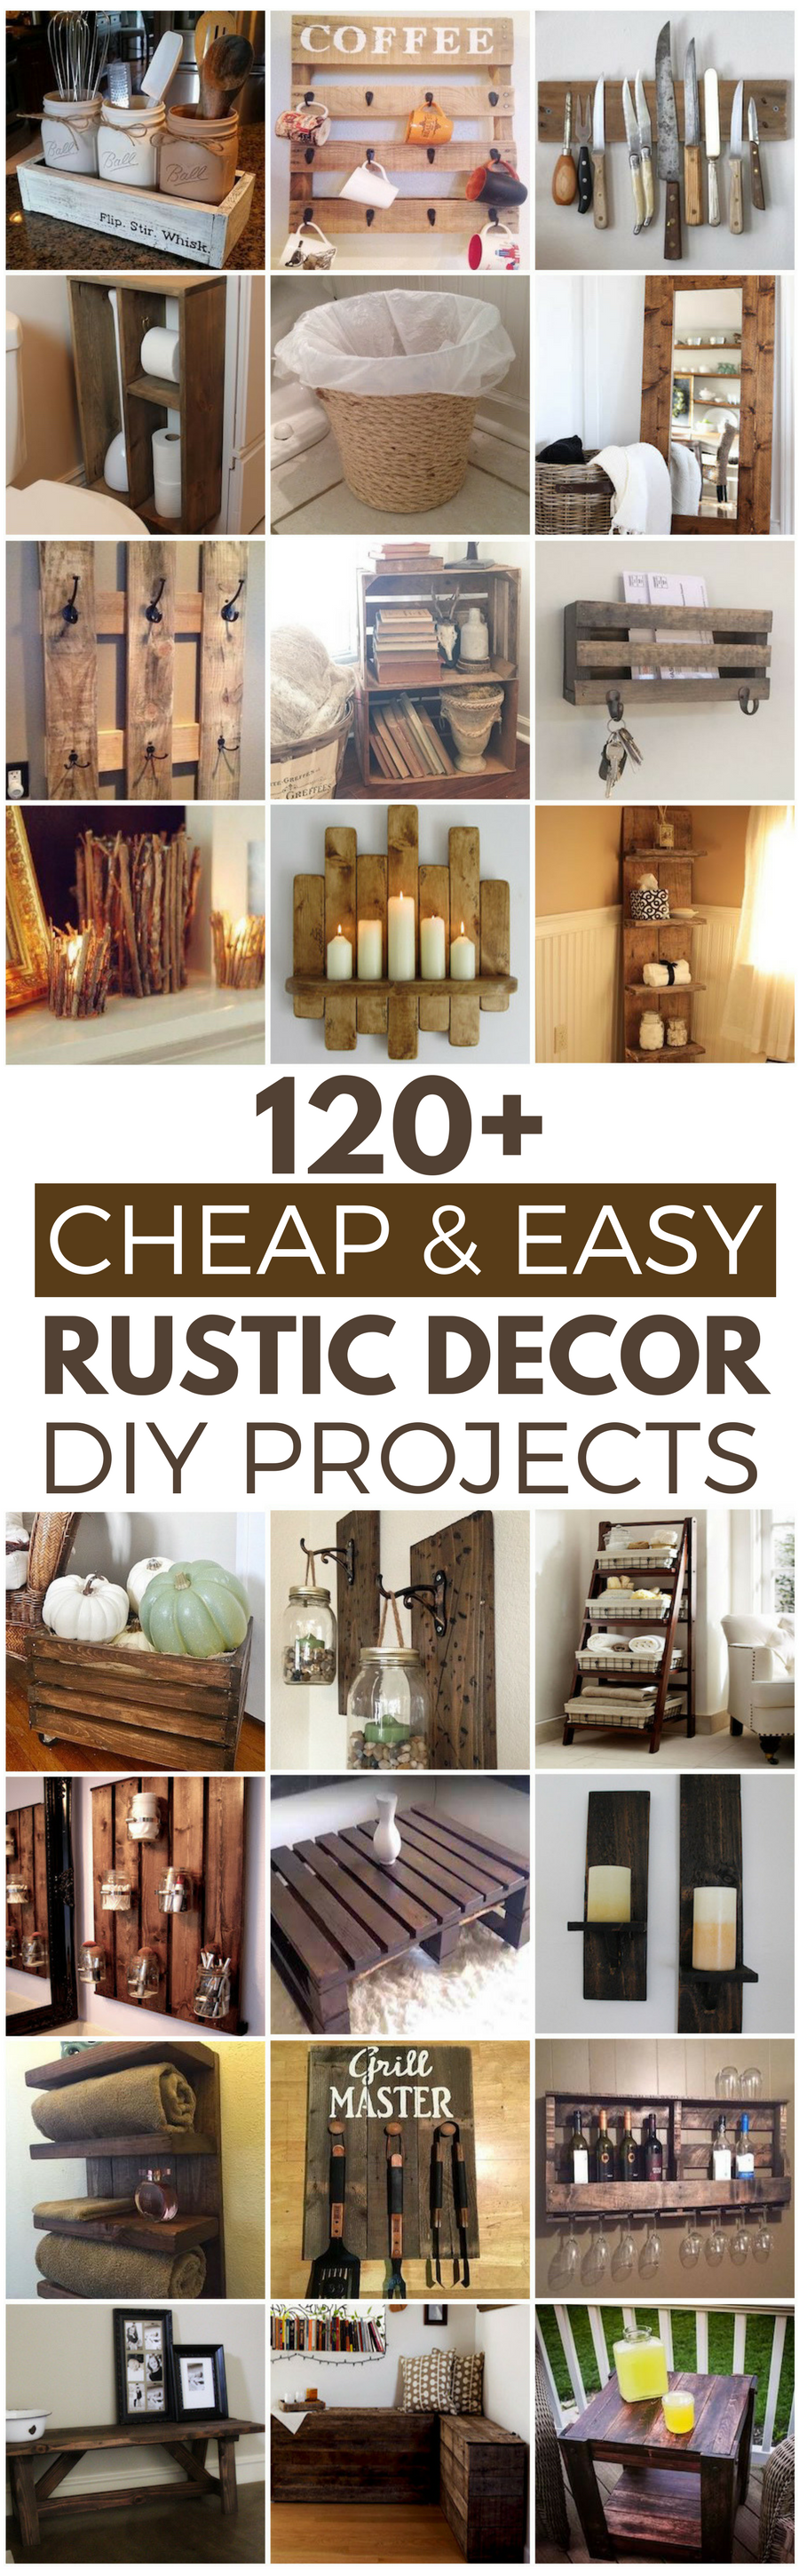 Great Rustic Home Decor Ideas